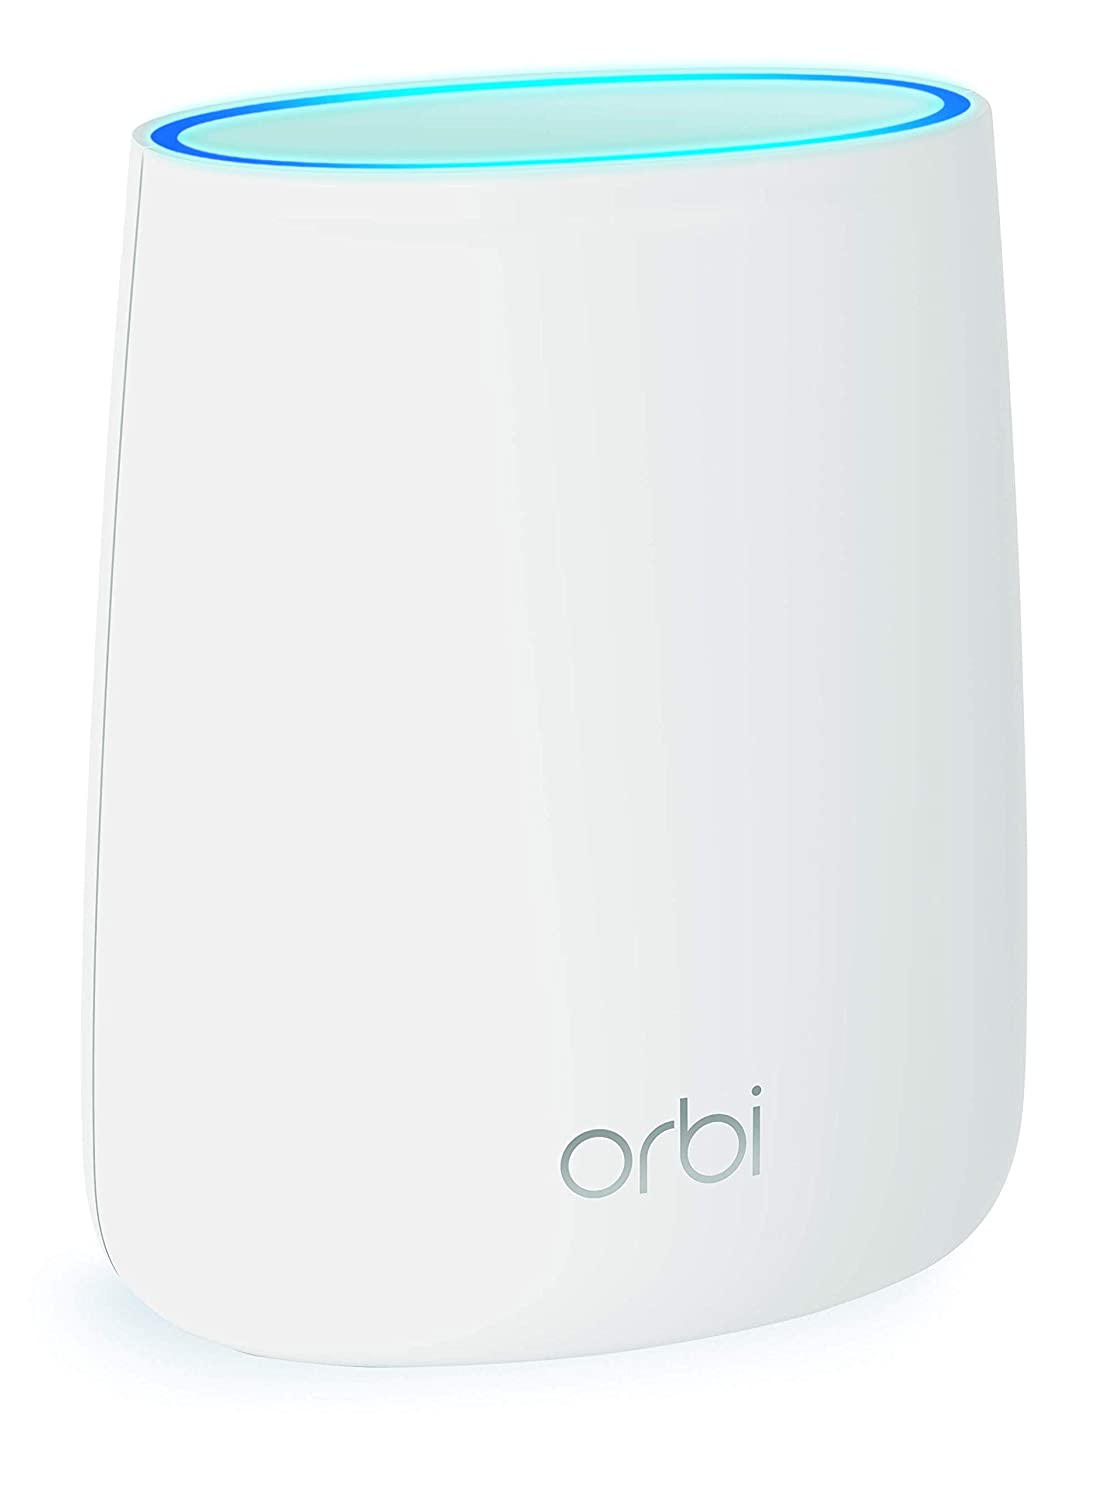 2.2 Gbps Over 2,000 sq feet NETGEAR Orbi Whole Home Mesh-Ready WiFi Router